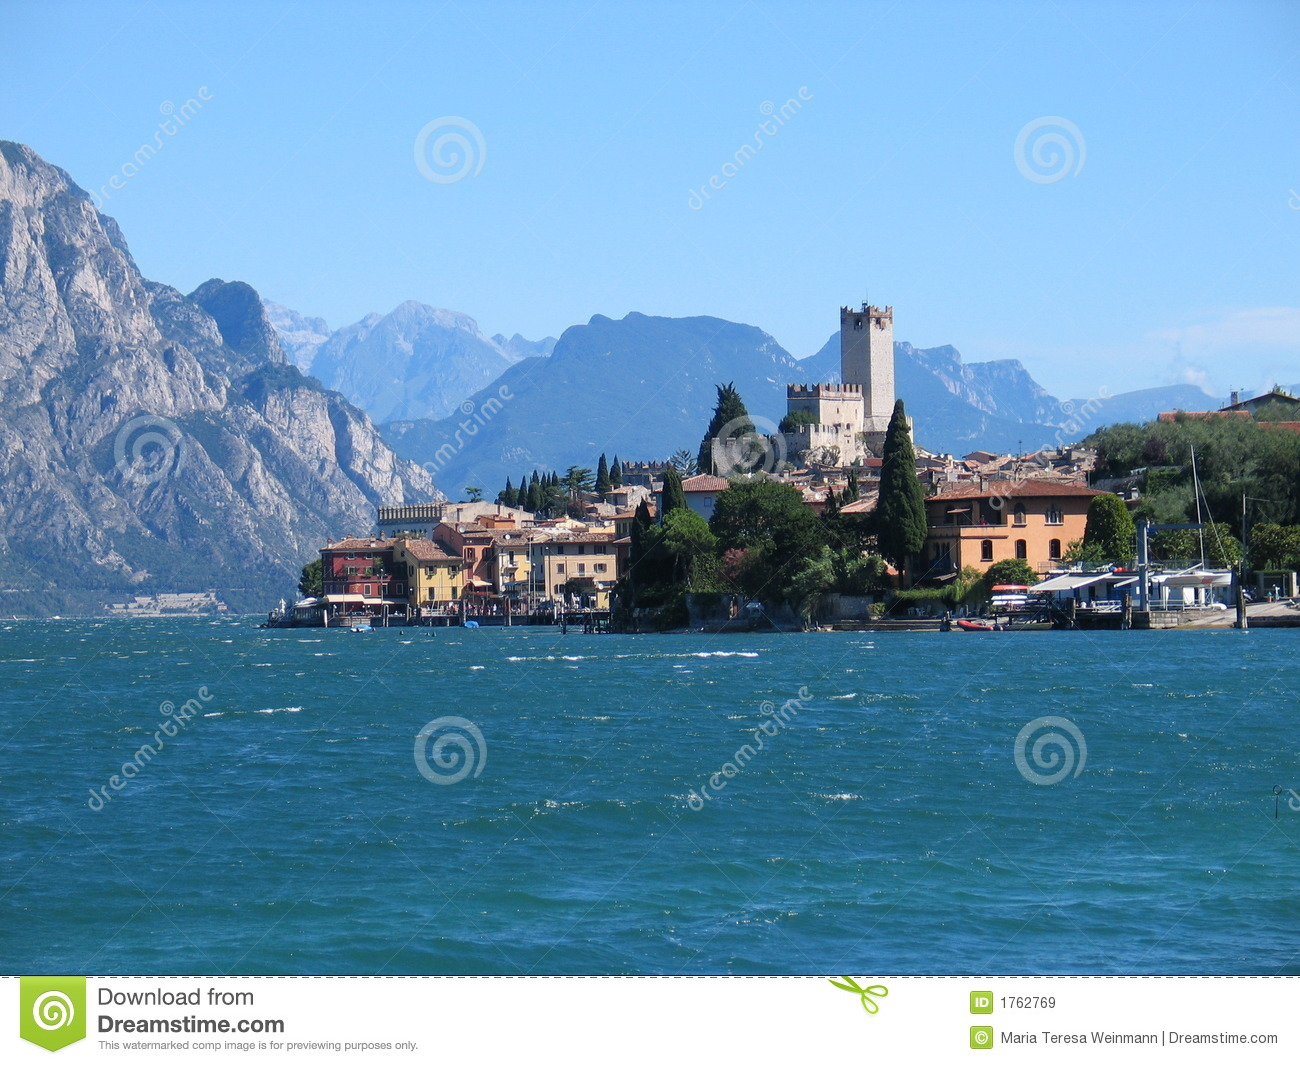 Malcesine (Italy) Royalty Free Stock Images - Image: 1762769